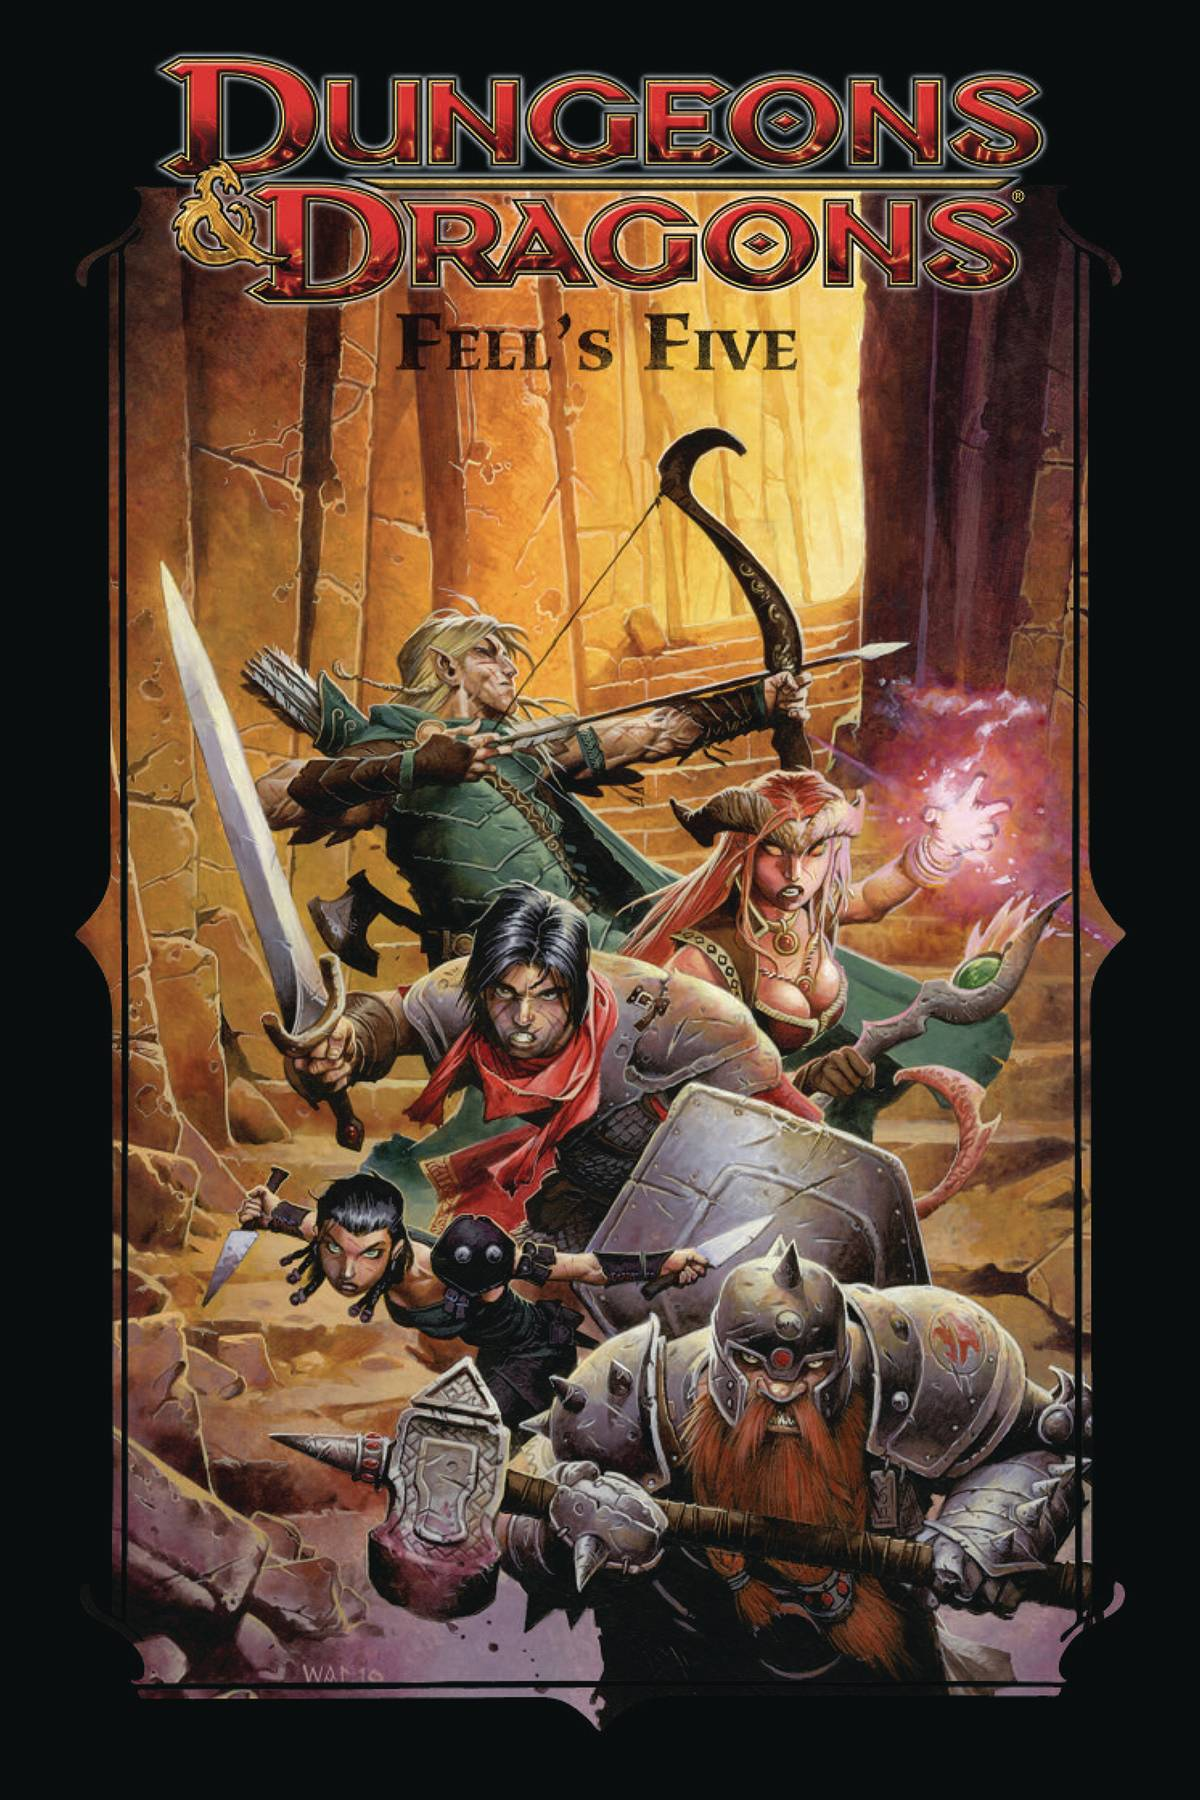 DUNGEONS & DRAGONS FELLS FIVE TP